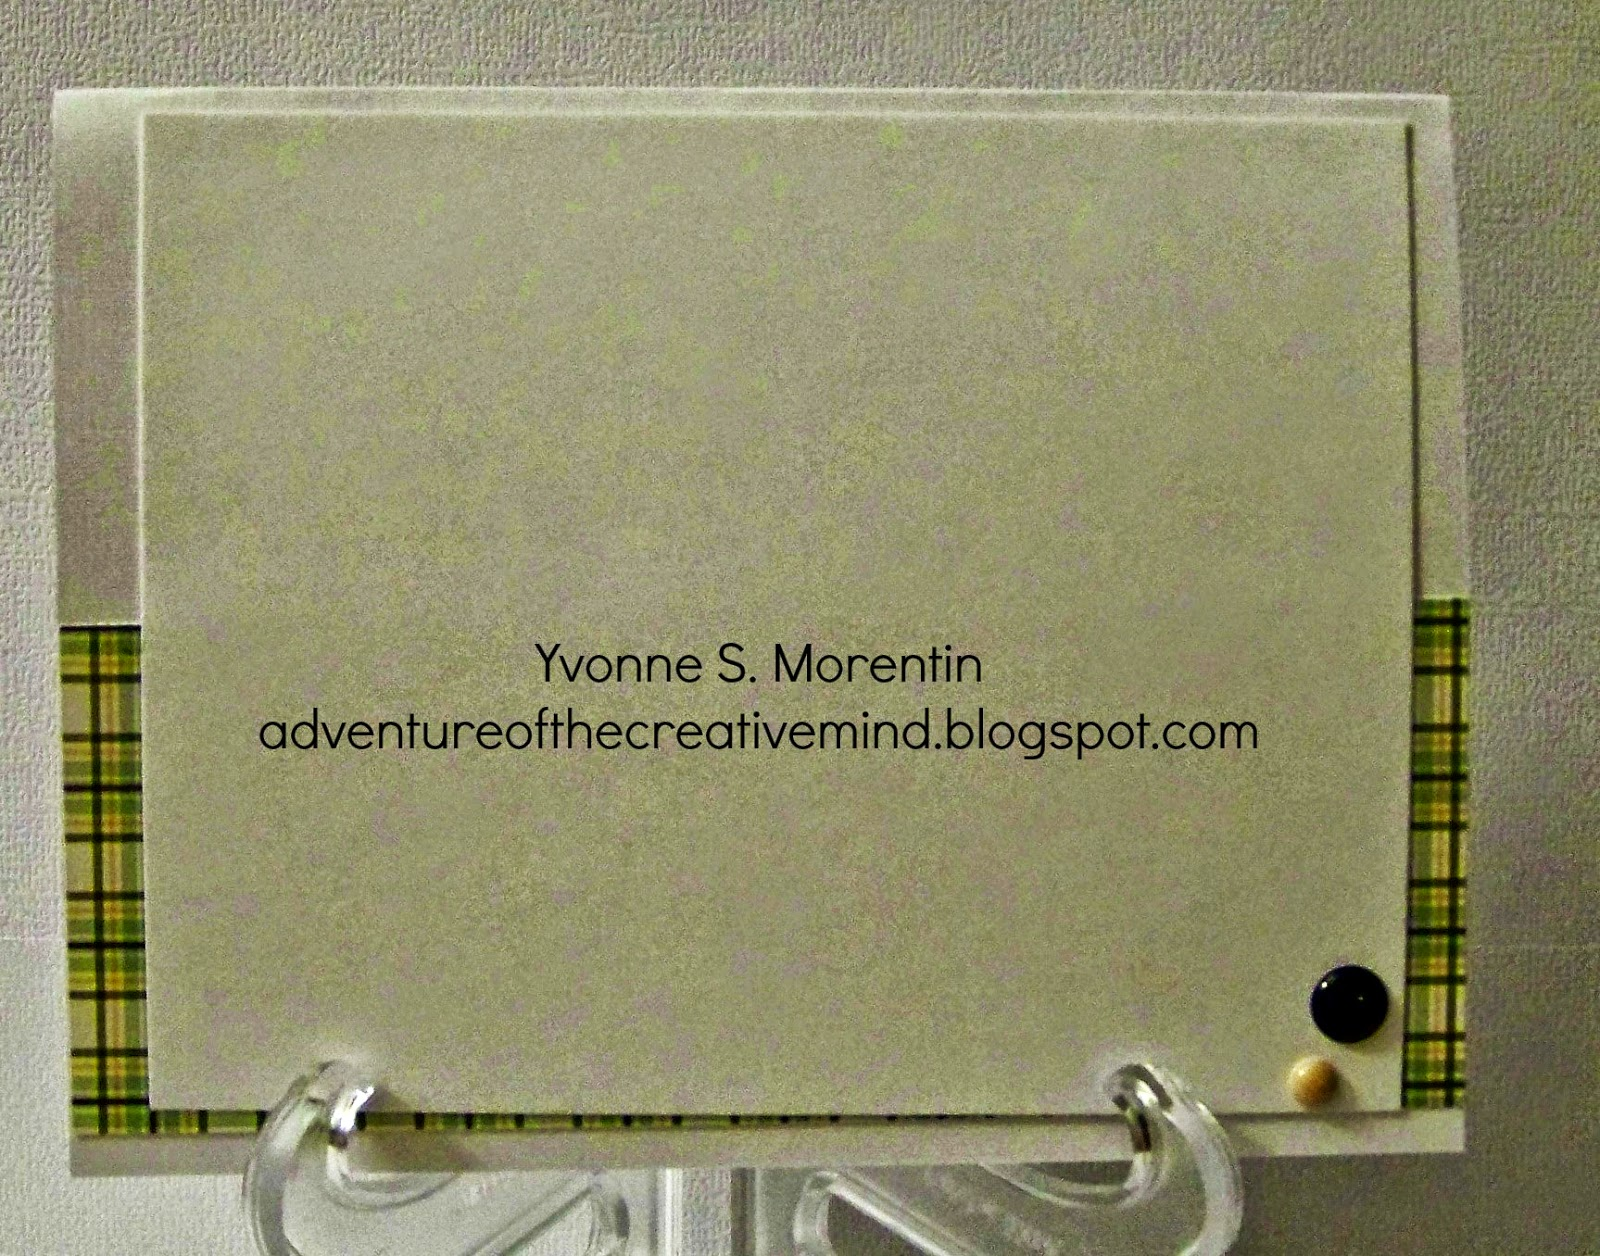 Yvonne S. Morentin- http://adventureofthecreativemind.blogspot.com/